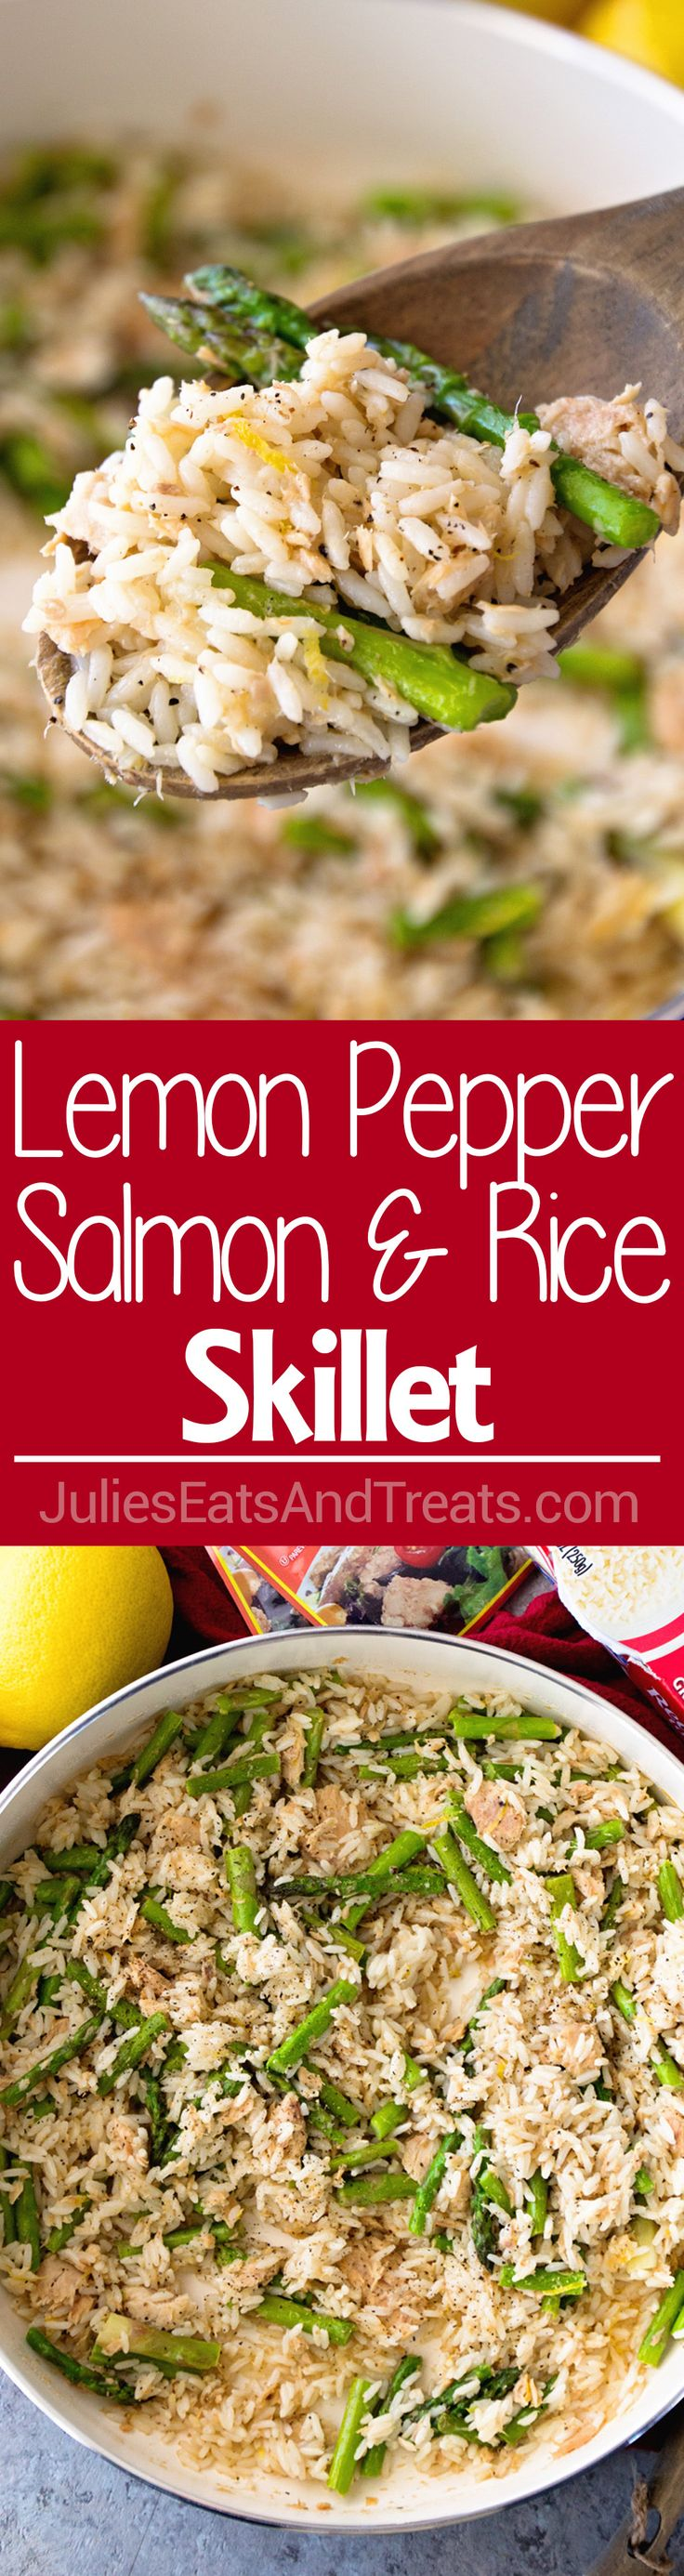 Lemon Pepper Salmon & Rice Skillet ~ Quick, Easy and Healthy Dinner! Grab Your Skillet and Have Dinner Ready in 20 Minutes! Only 6 Ingredients!